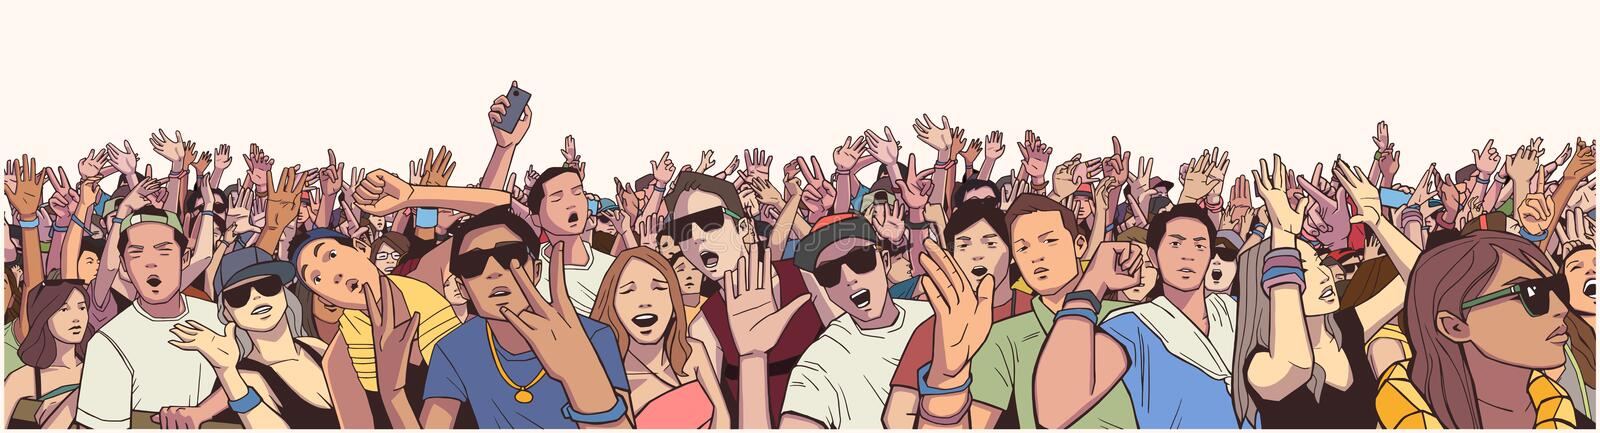 Stylized illustration festival crowd at live concert partying and having fun royalty free illustration